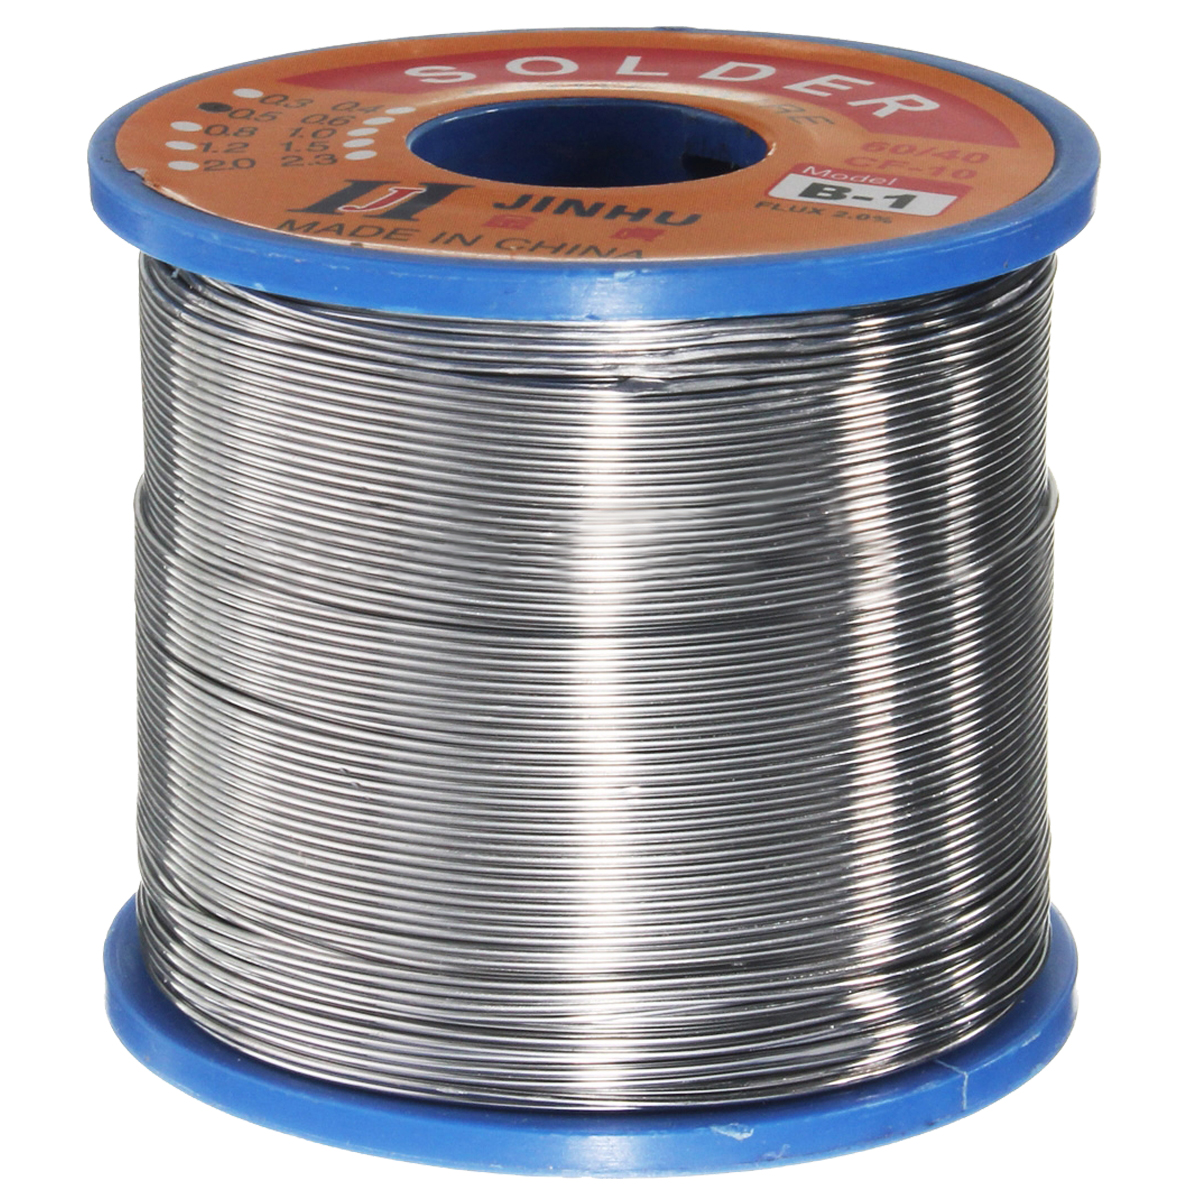 Practical 400g 60/40 Tin lead Solder Flux Wire Rosin Core Soldering ...